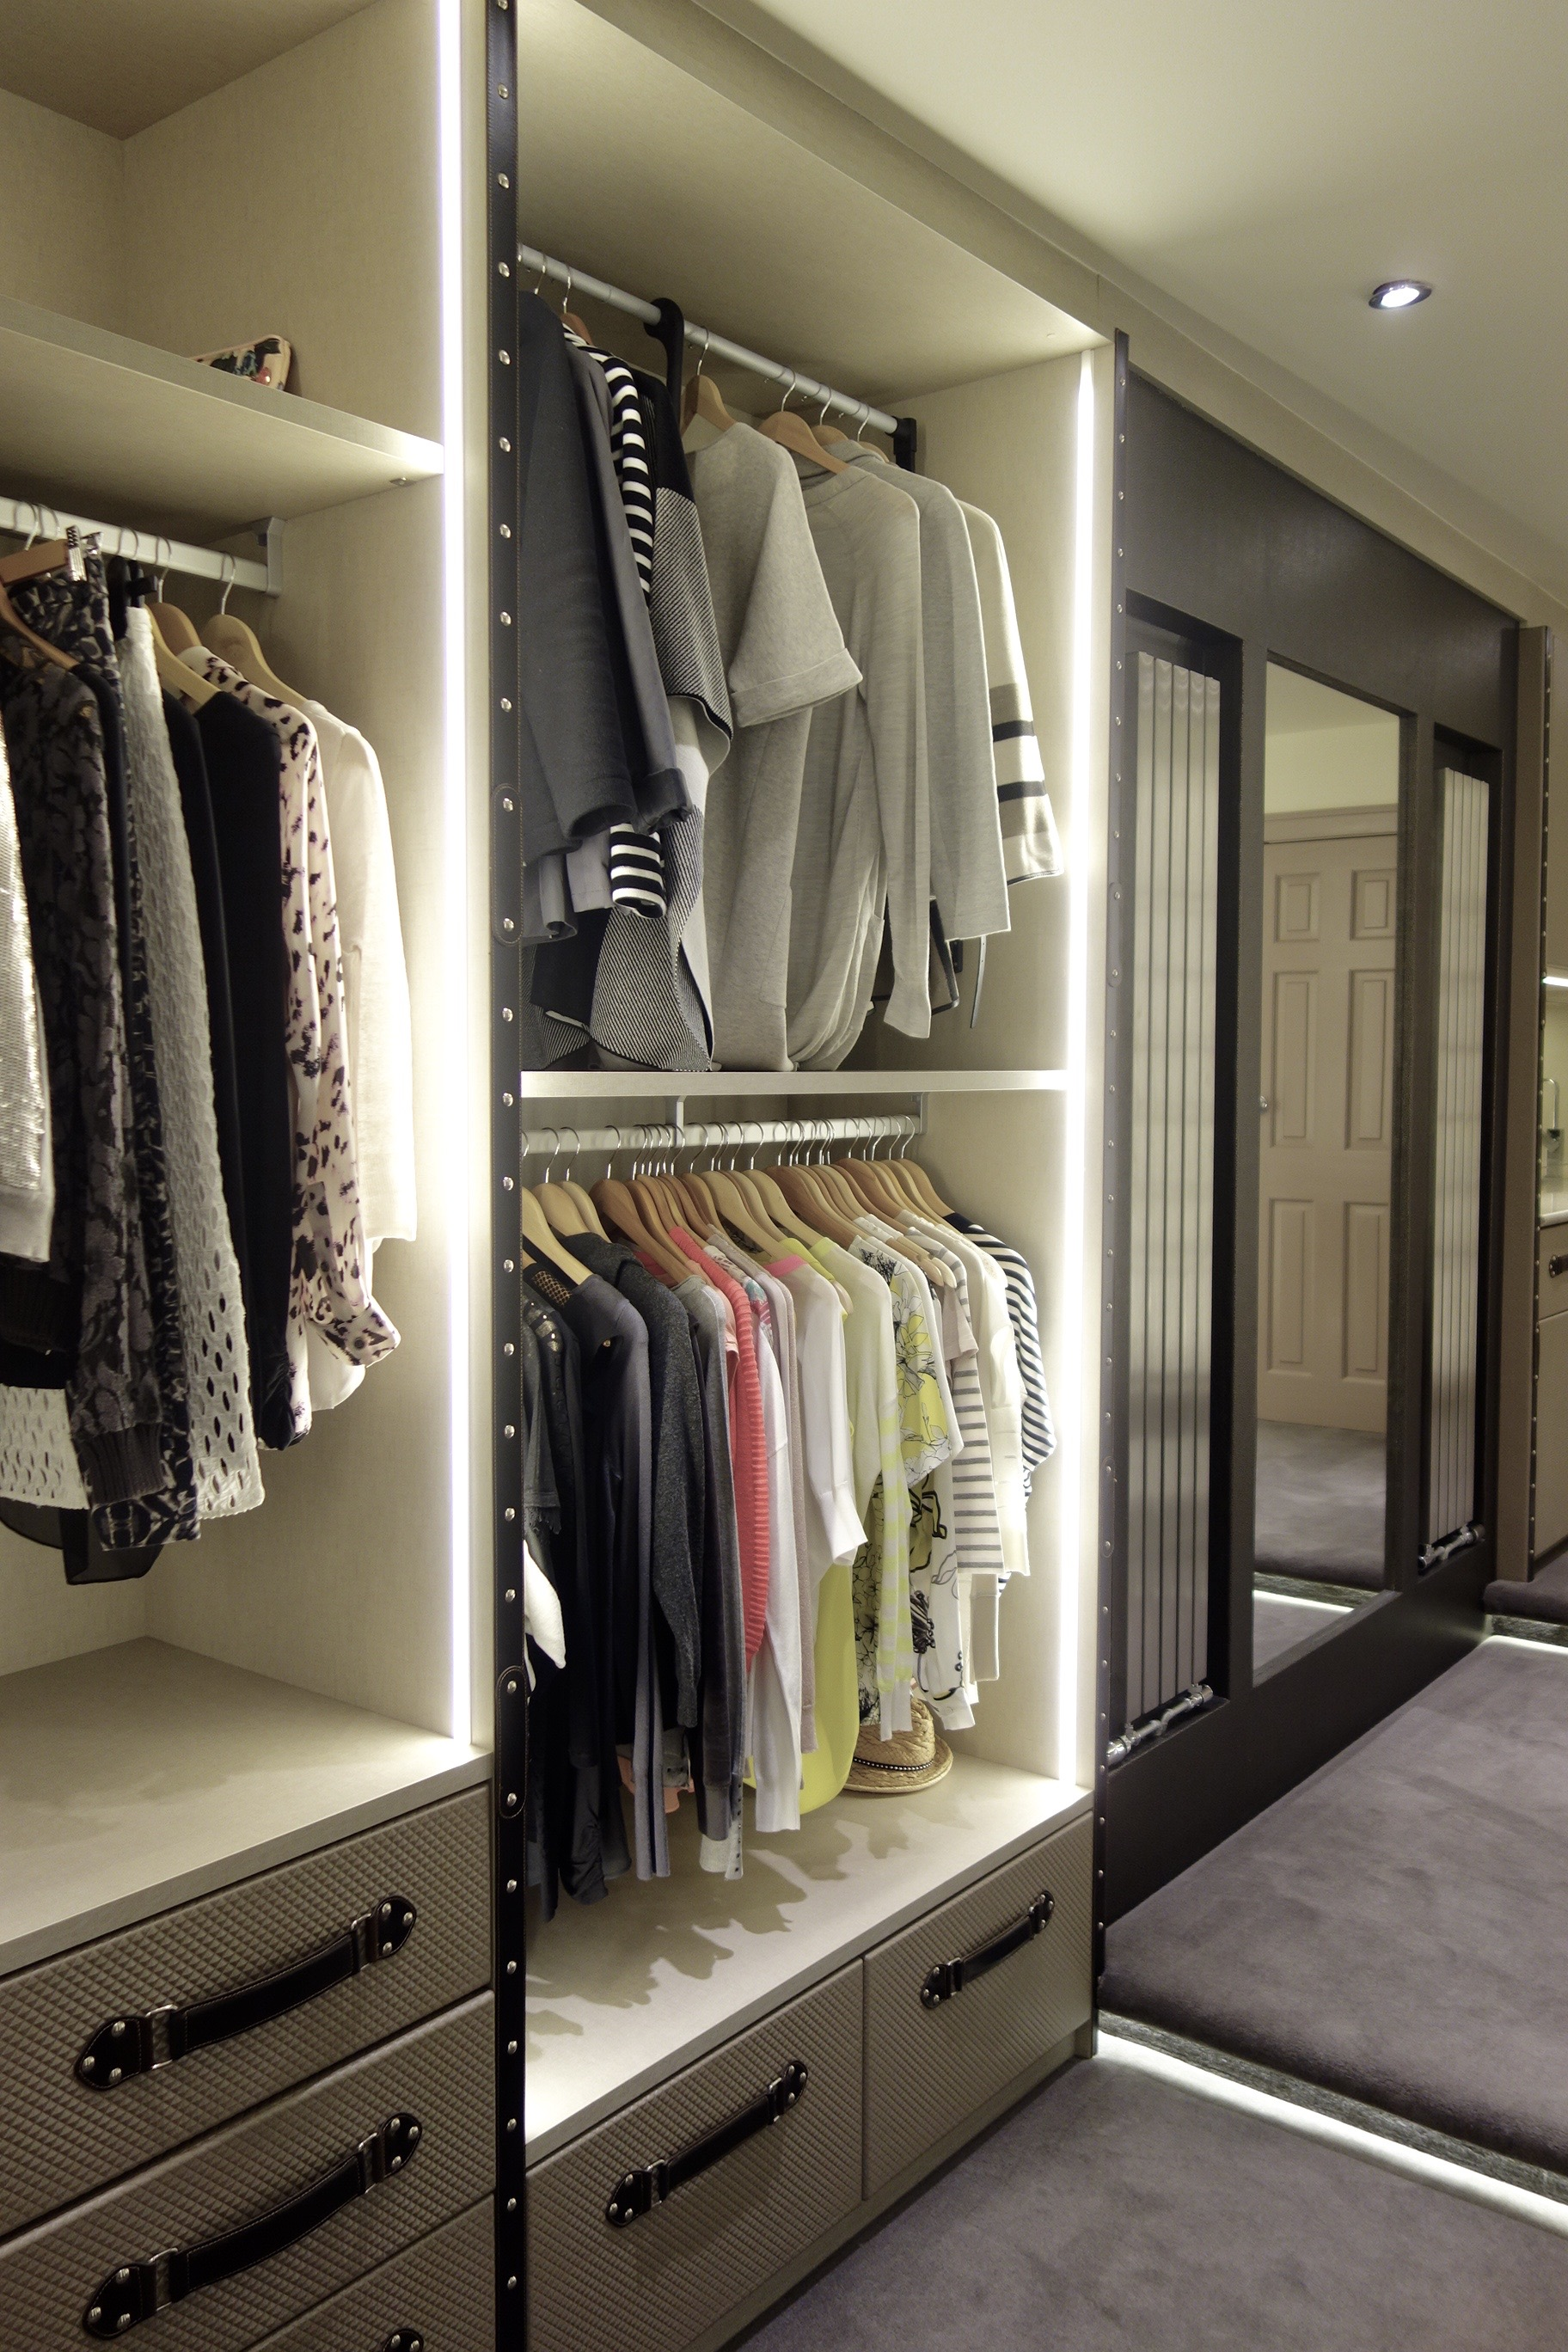 walk in wardrobe, fitted wardrobe, luxury closet, bedroom walk in wardrobe